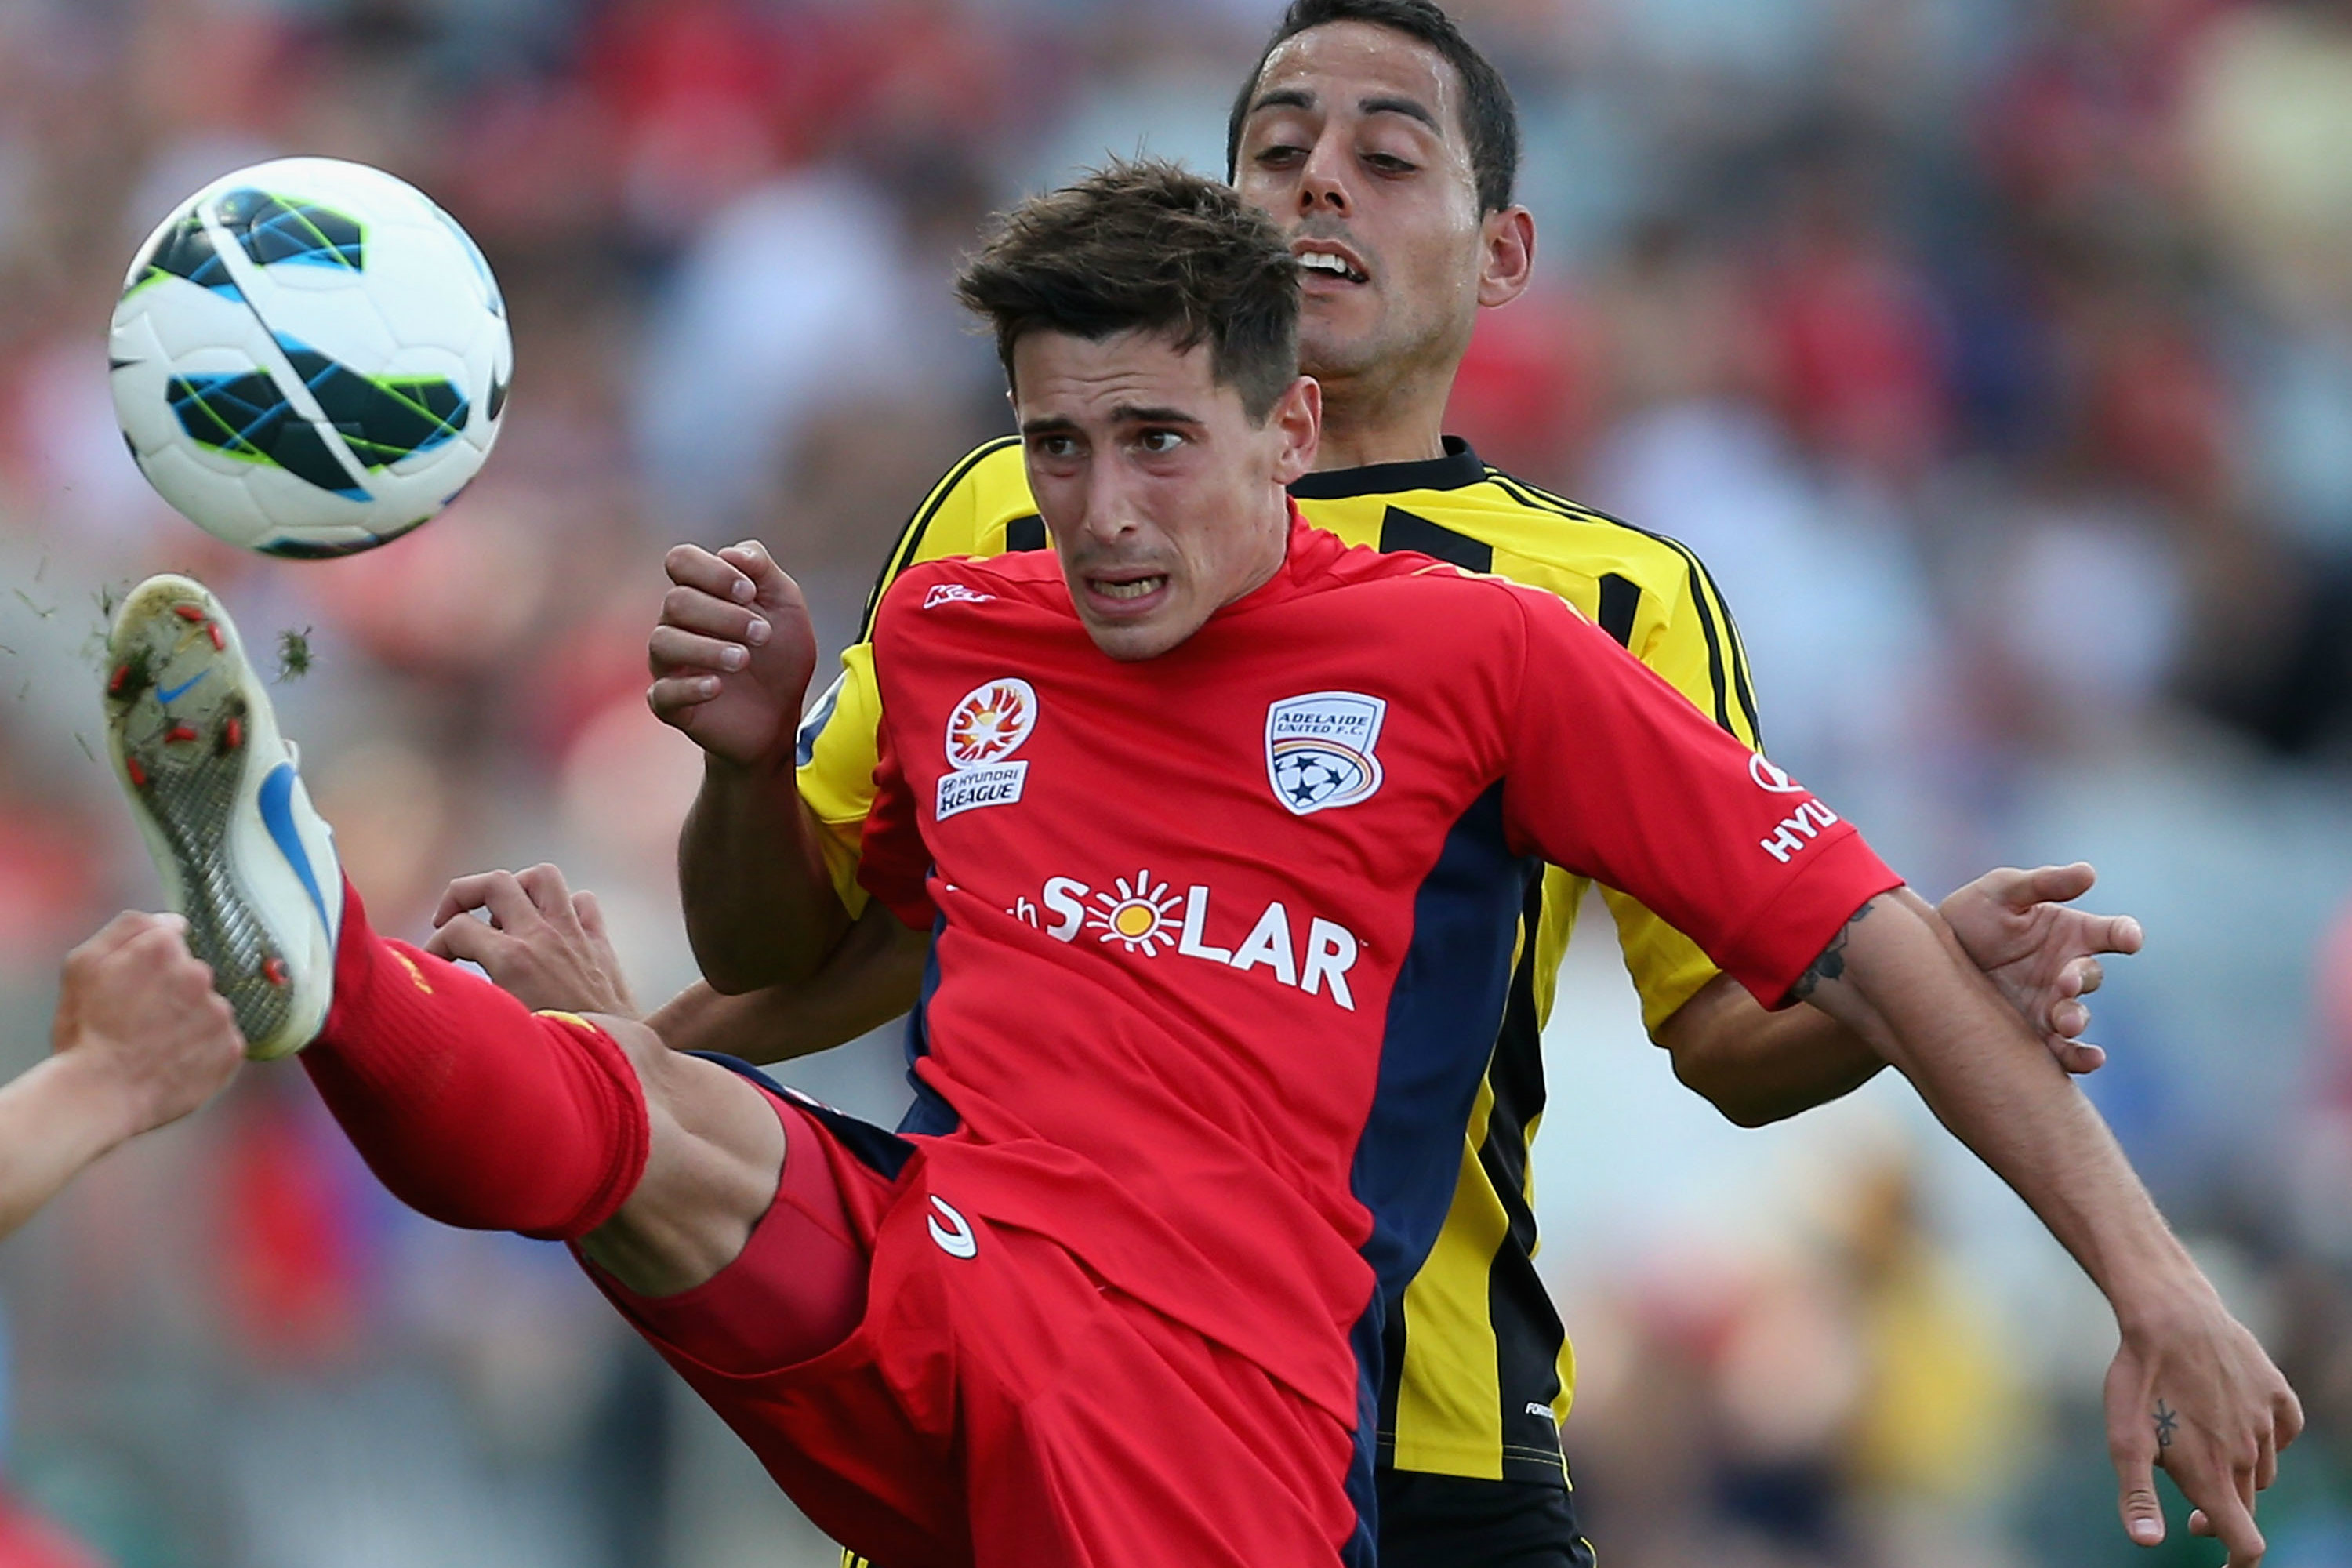 Evan Kostopoulos in action for Adelaide United